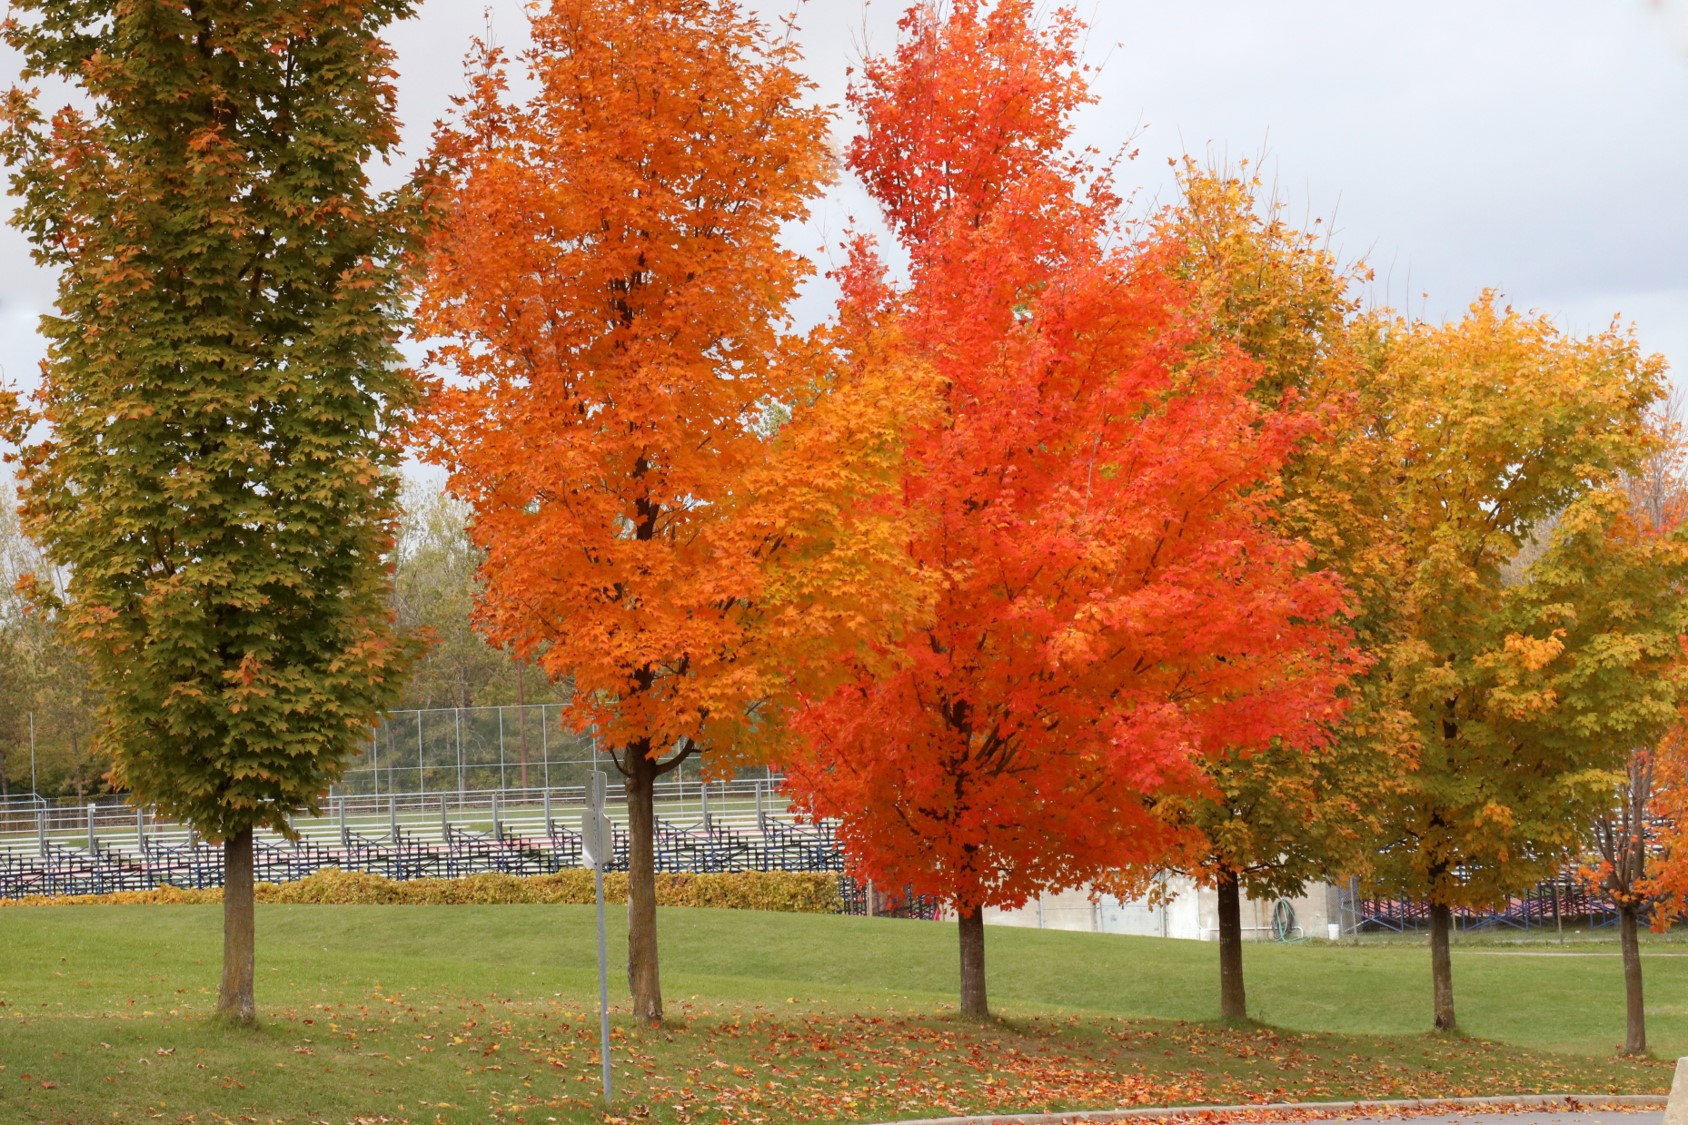 A picture of colorful trees with changing leaves in the fall. Proper training in digital photography can produce this type of vibrant picture.